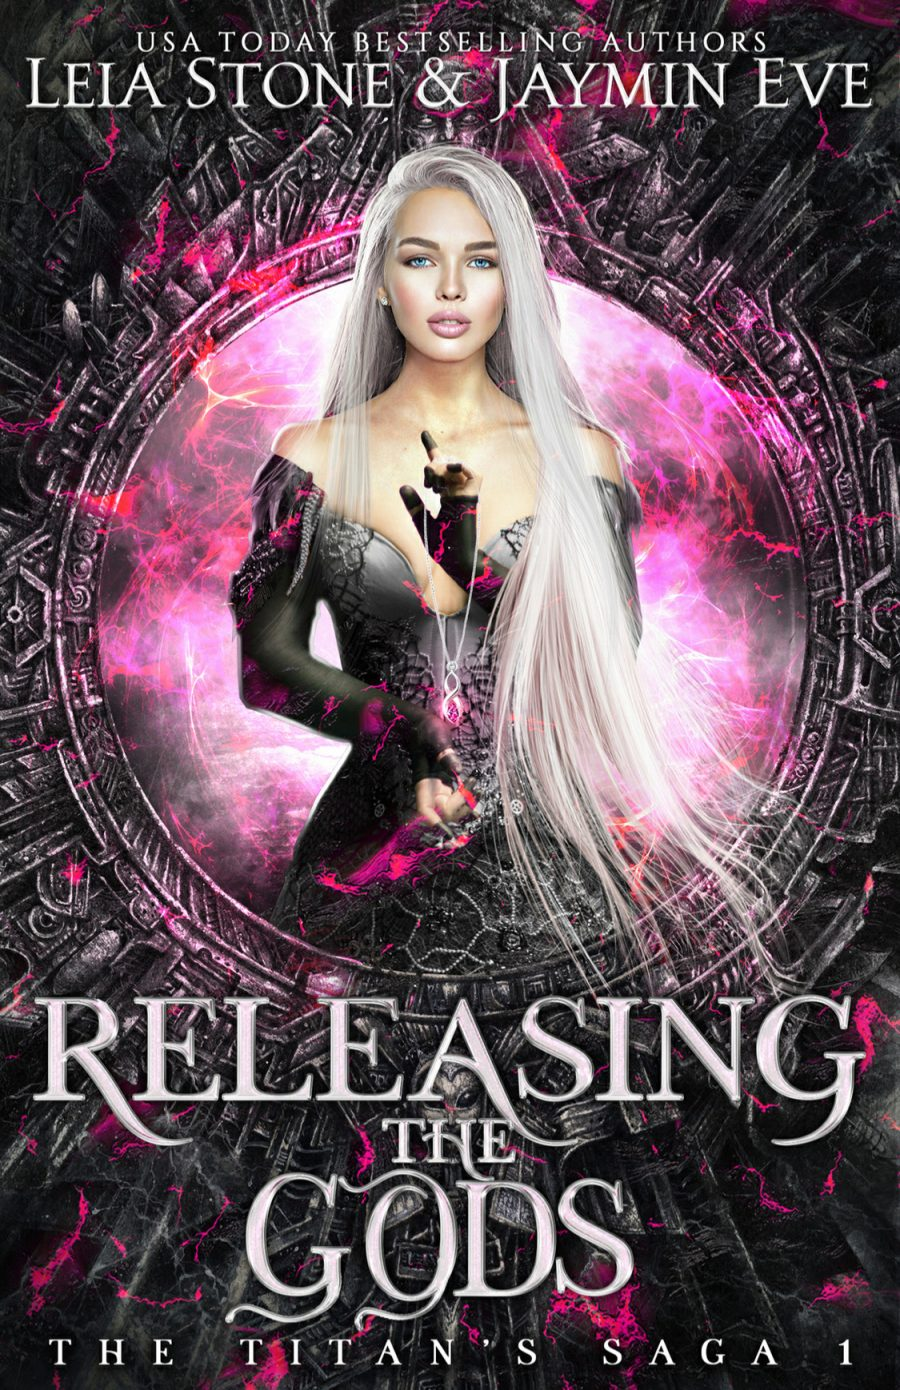 Releasing The Gods by Jaymin Eve & Leia Stone - A Book Review #BookReview #YAFantasy #PNR #SlowBurn #Gods #PopCulture #KindleUnlimited #KU